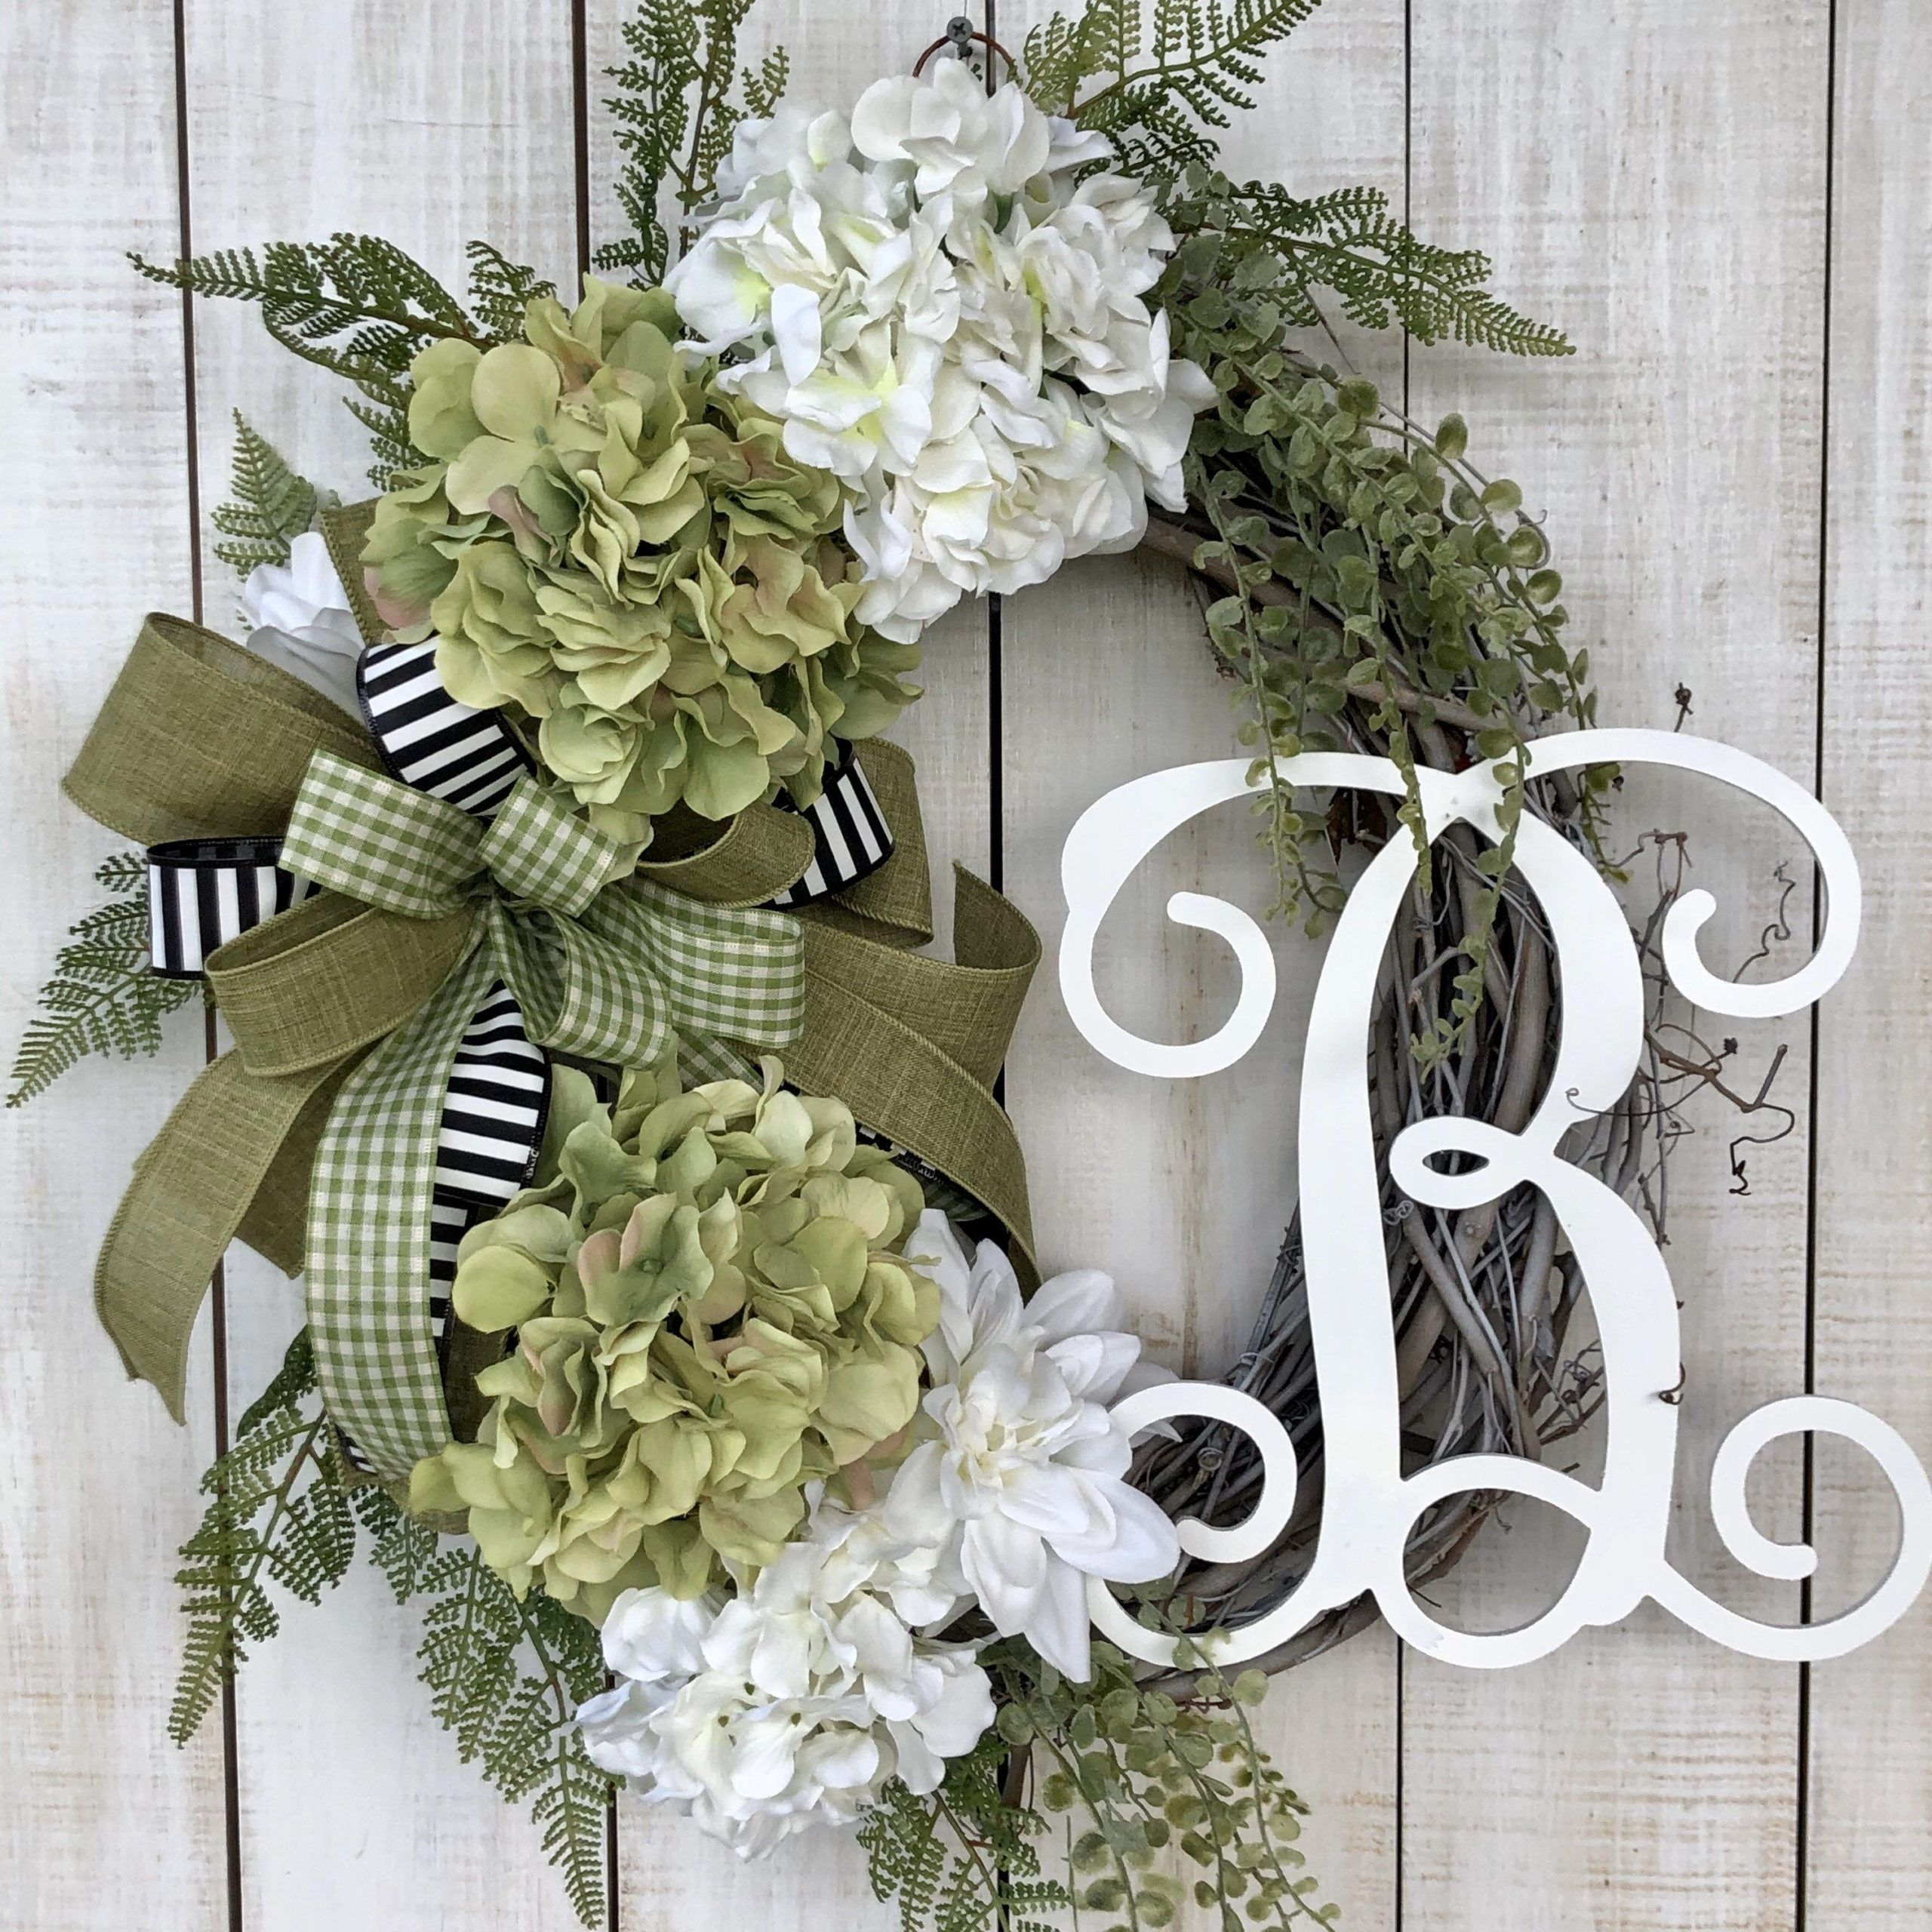 Monogram wreaths, Everyday wreath, farmhouse wreath, Hydrangea wreath, all season wreath, everyday wreath for front door, Christmas gift, #Christmas #Door #Everyday #Farmhouse #Front #Gift #Hydrangea #Monogram #season #Wreath #Wreaths